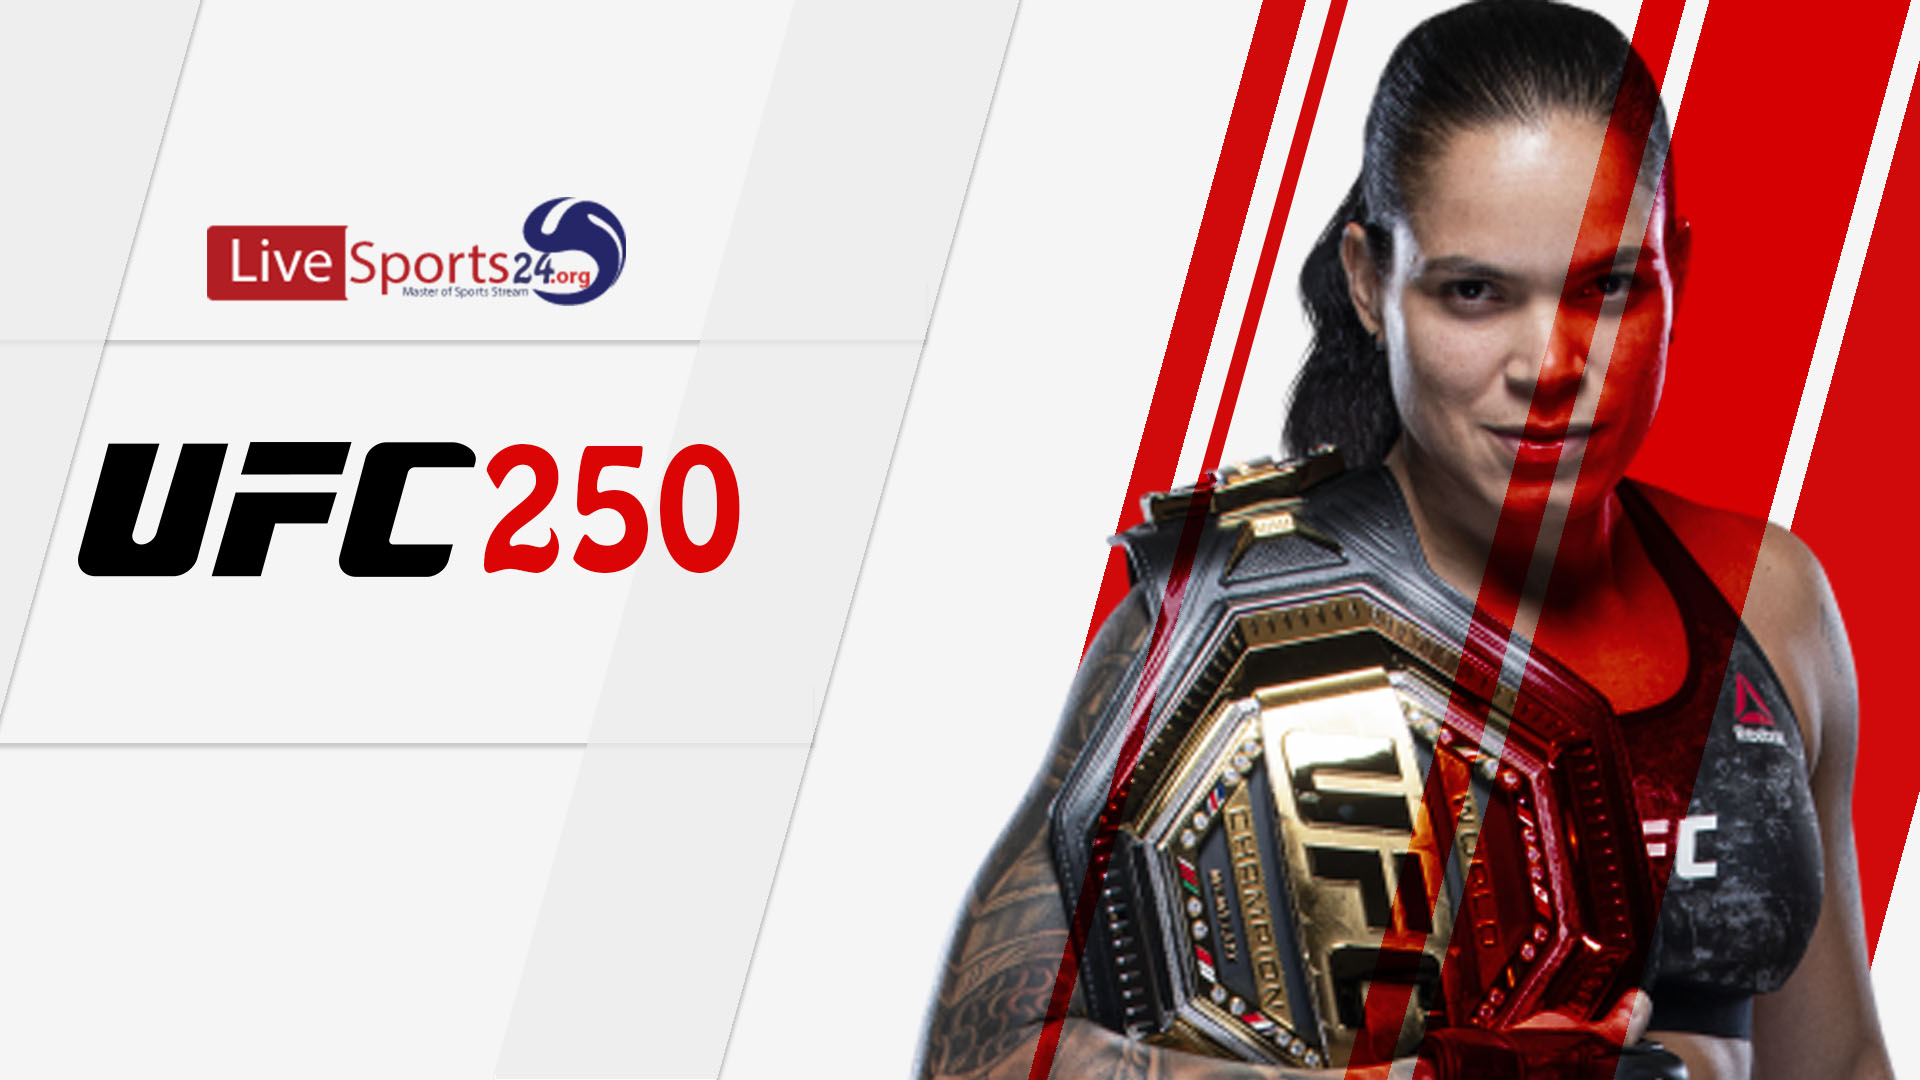 When is the UFC 250 | Location, TV Channel & Live Stream